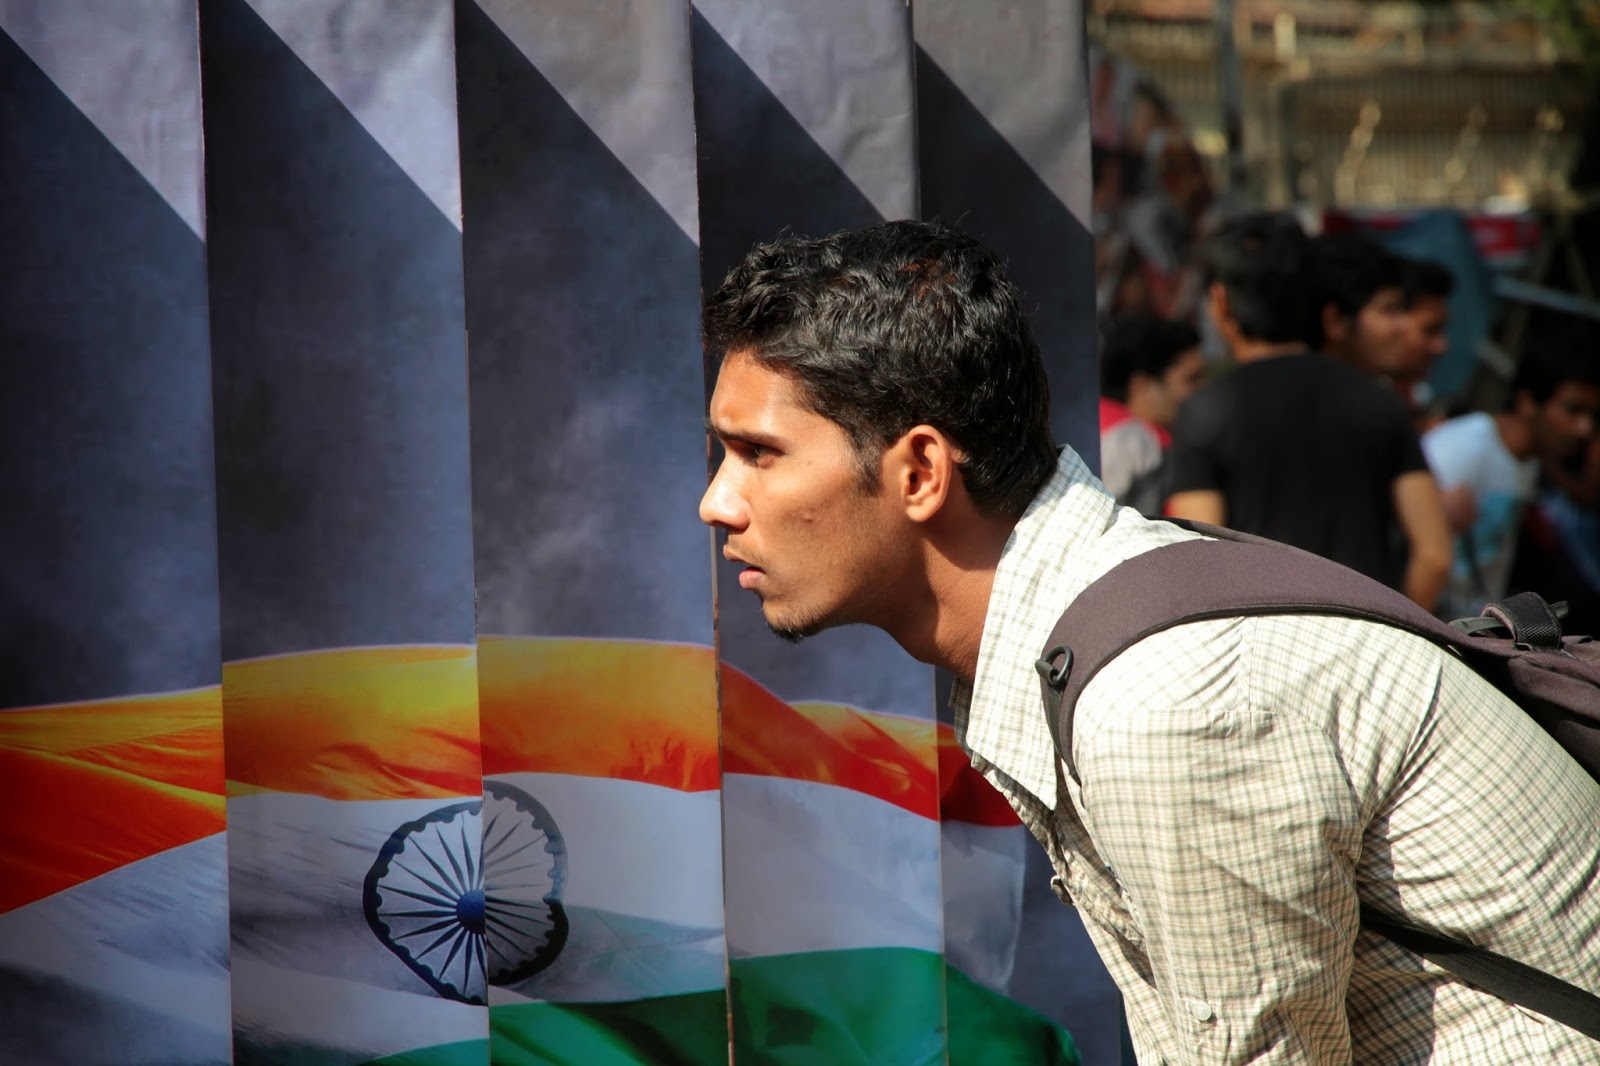 kala ghoda, mumbai, arts festival, india, indian flag, viewer